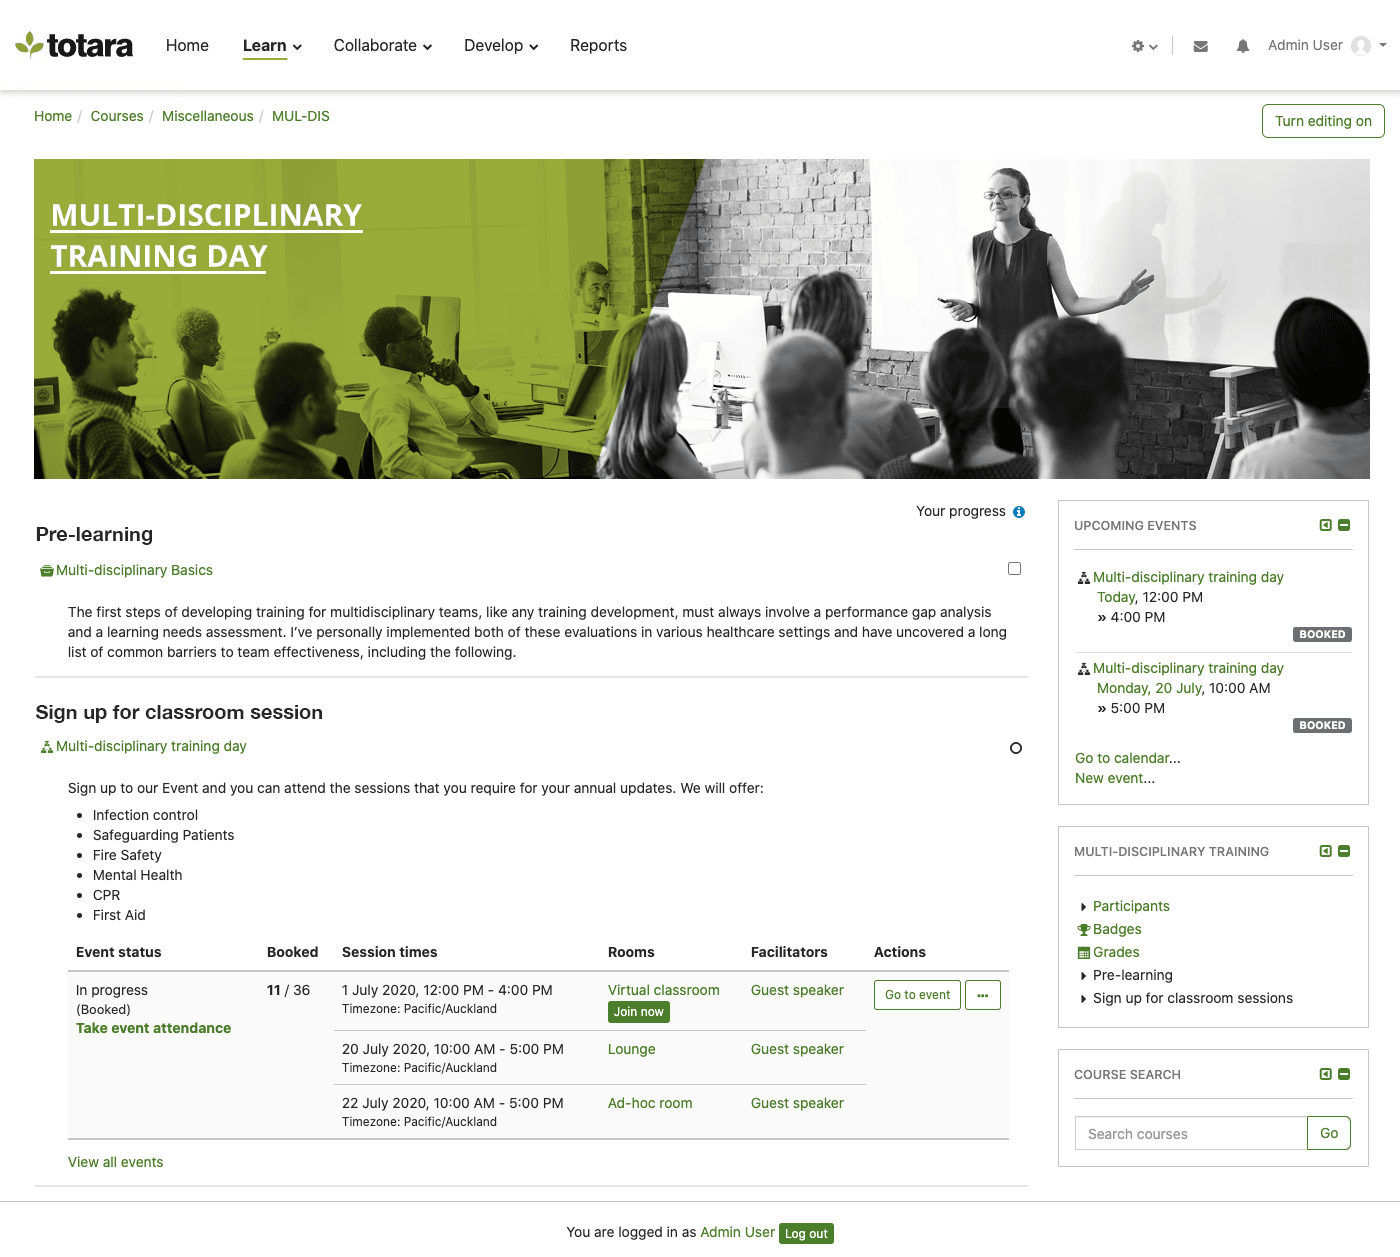 Course page in Totara Learn